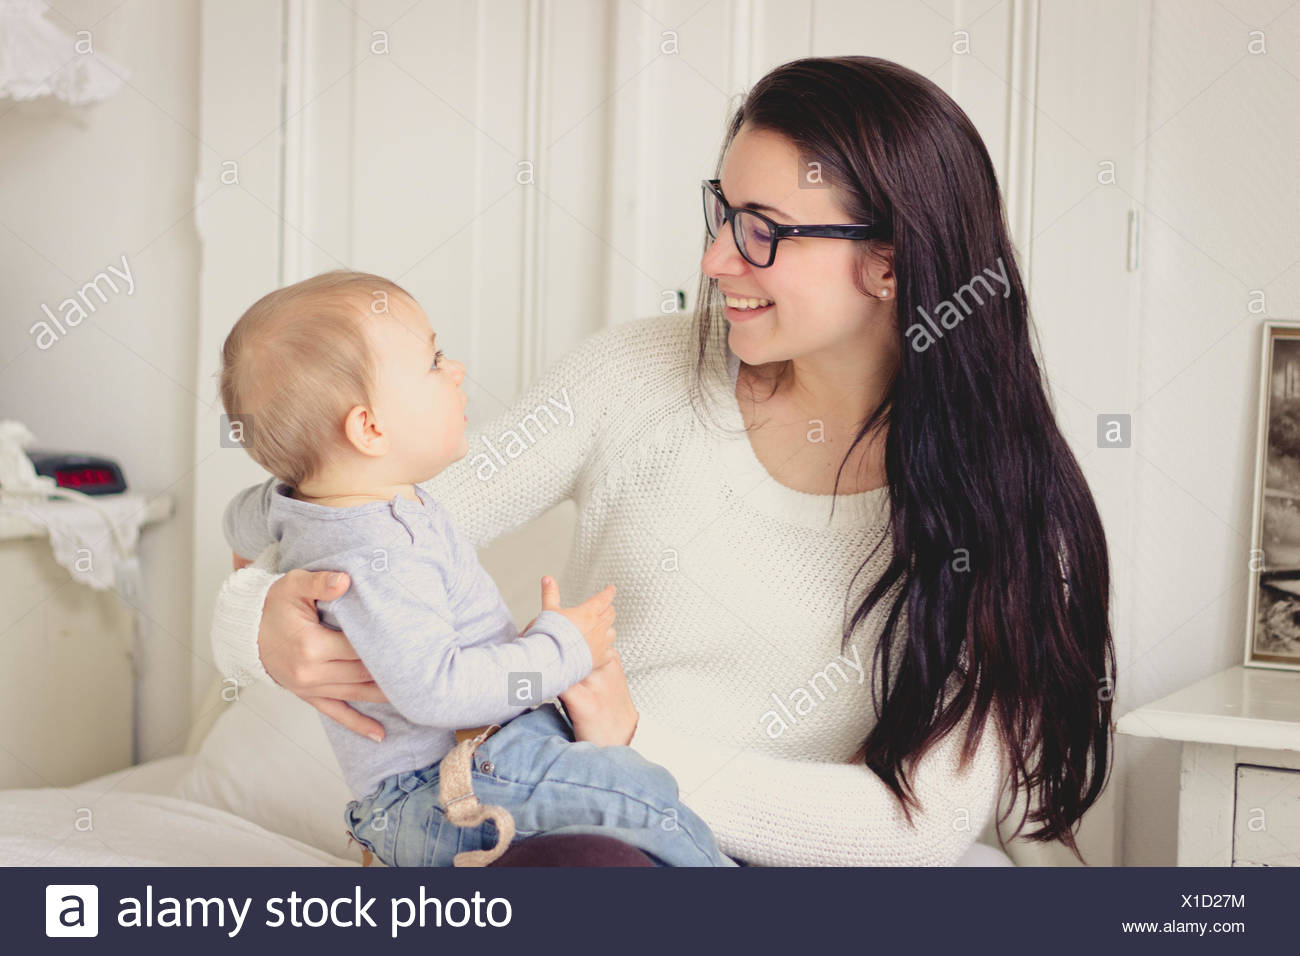 Netherlands, Mother and her baby boy - Stock Image